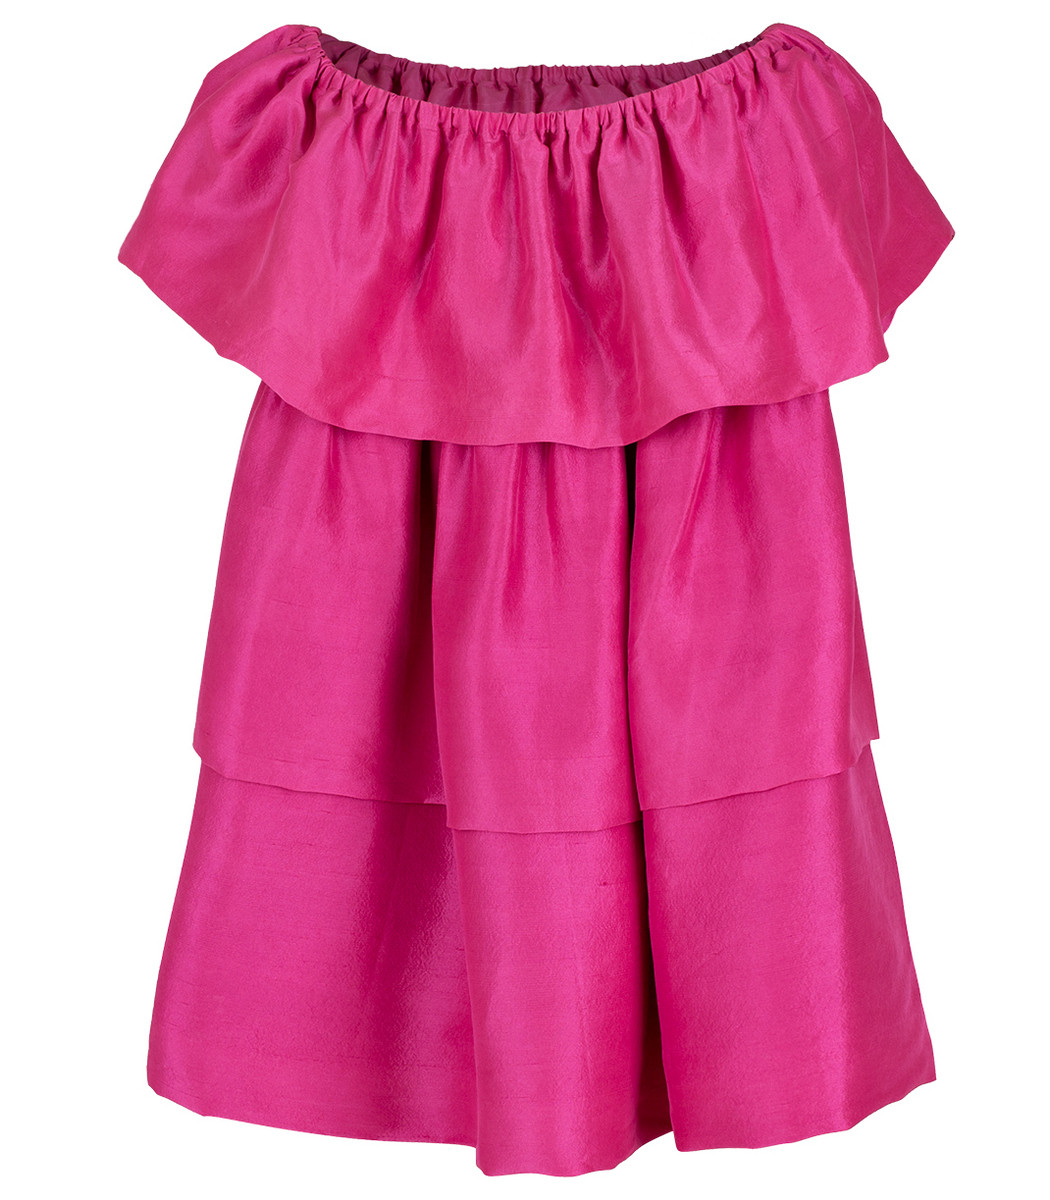 Azeeza Kamilla Raw Silk Bubblegum Dress